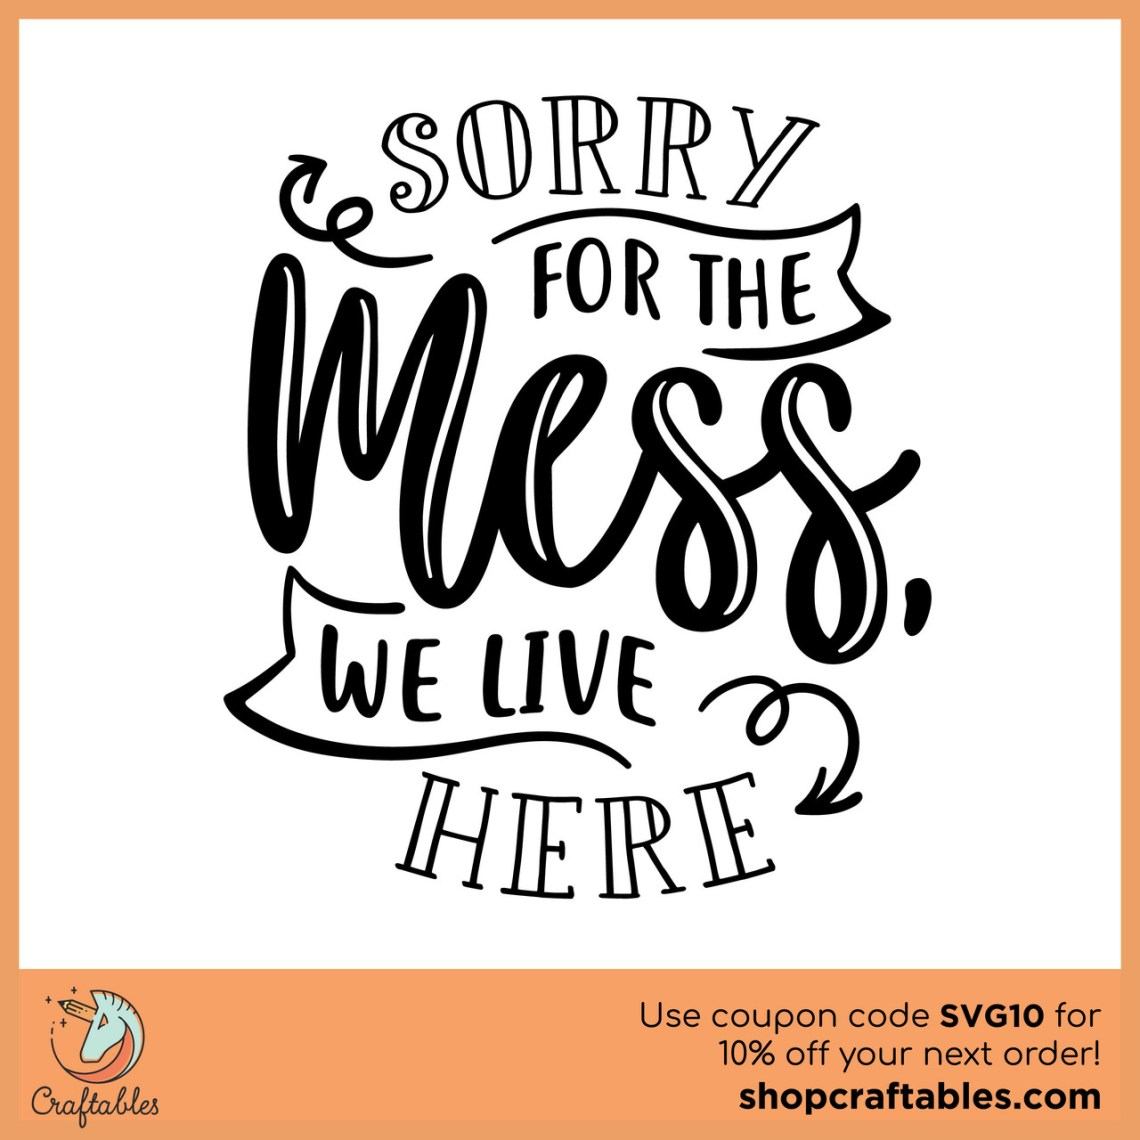 Download Free Sorry for the Mess We Live Here SVG Cut File | Craftables